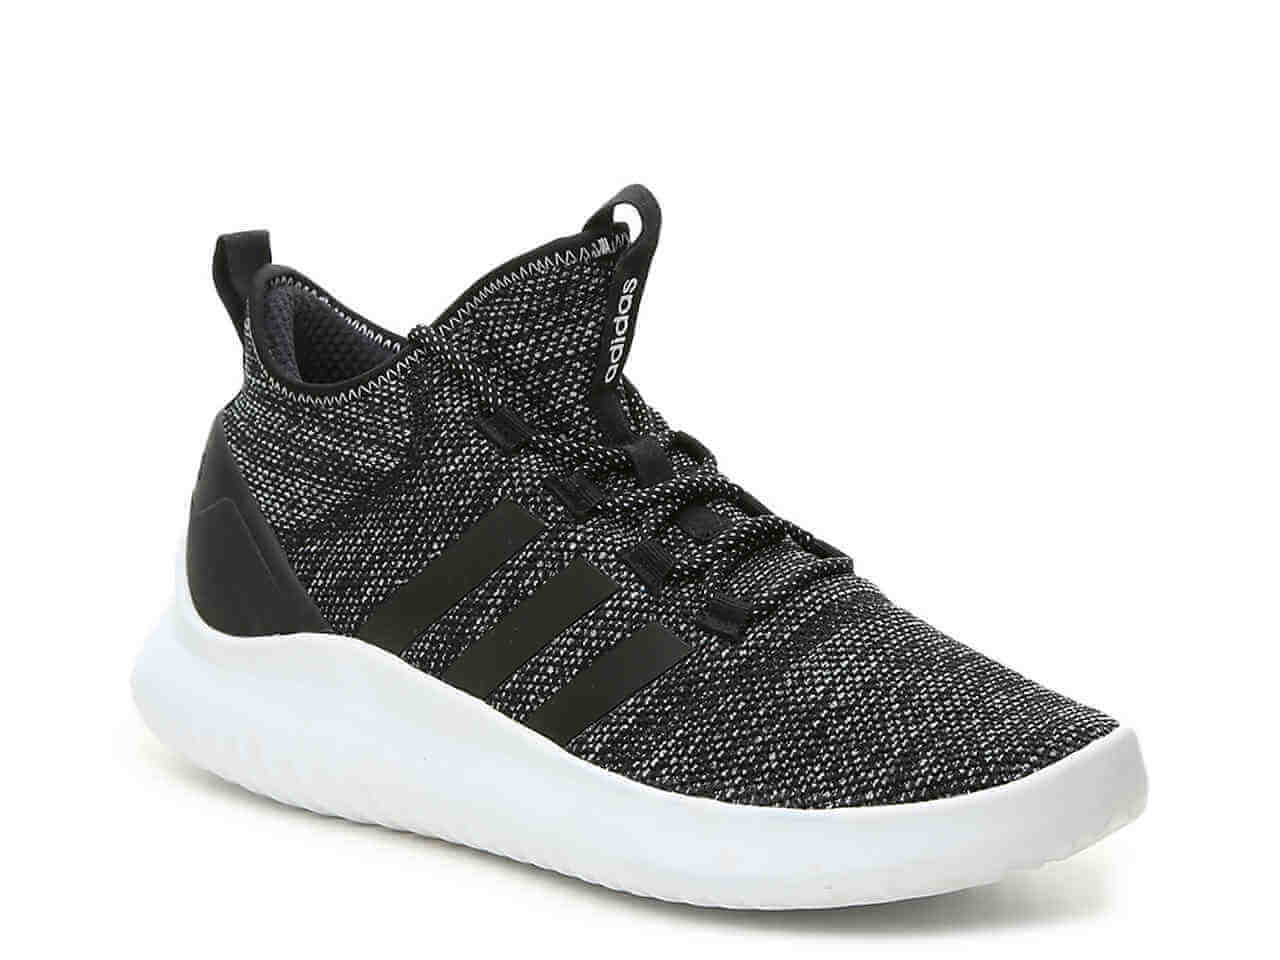 Adidas CloudFoam Ultimate 2